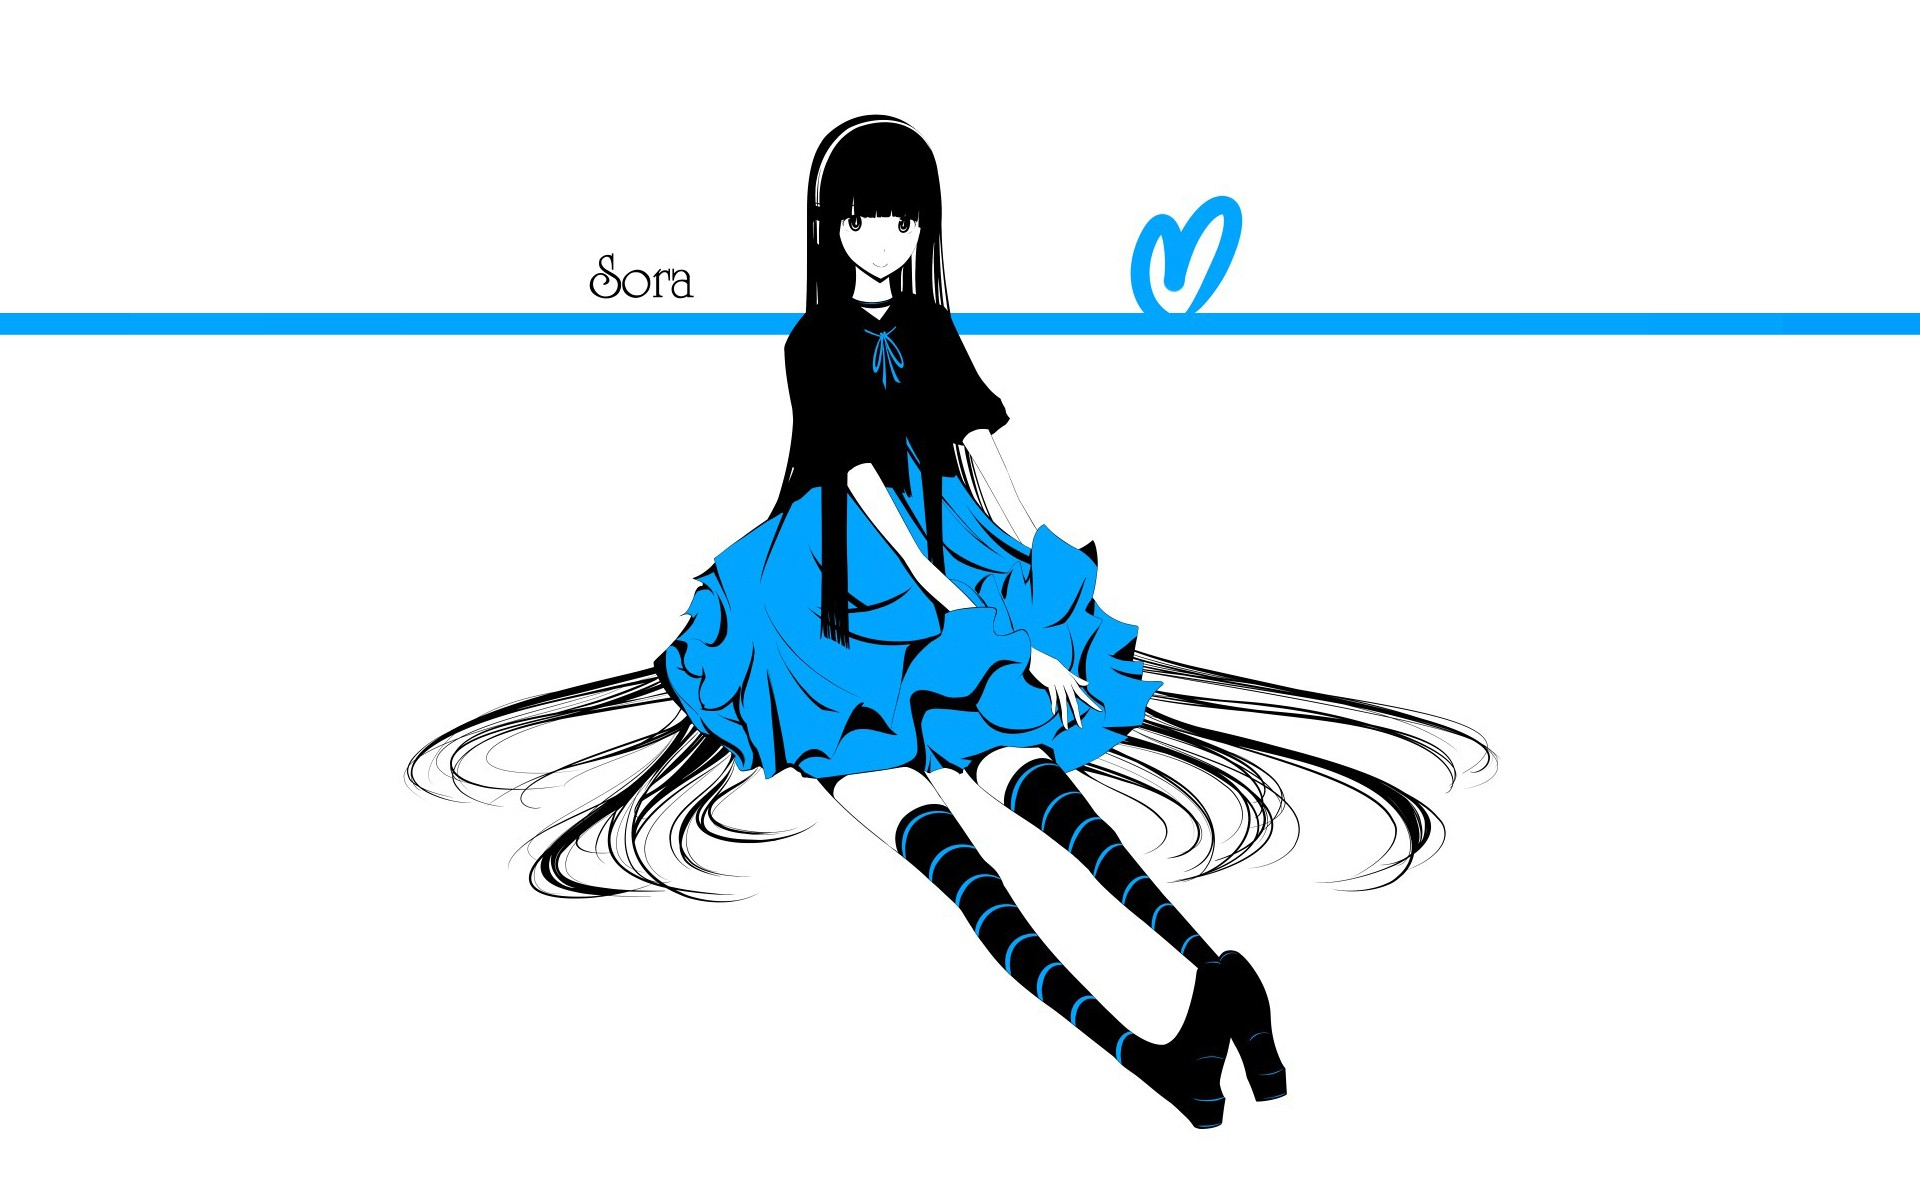 Striped Thigh Highs Anime Girl Wallpaper Dress Text Long Hair Shoes Thigh Highs Smiling Sitting